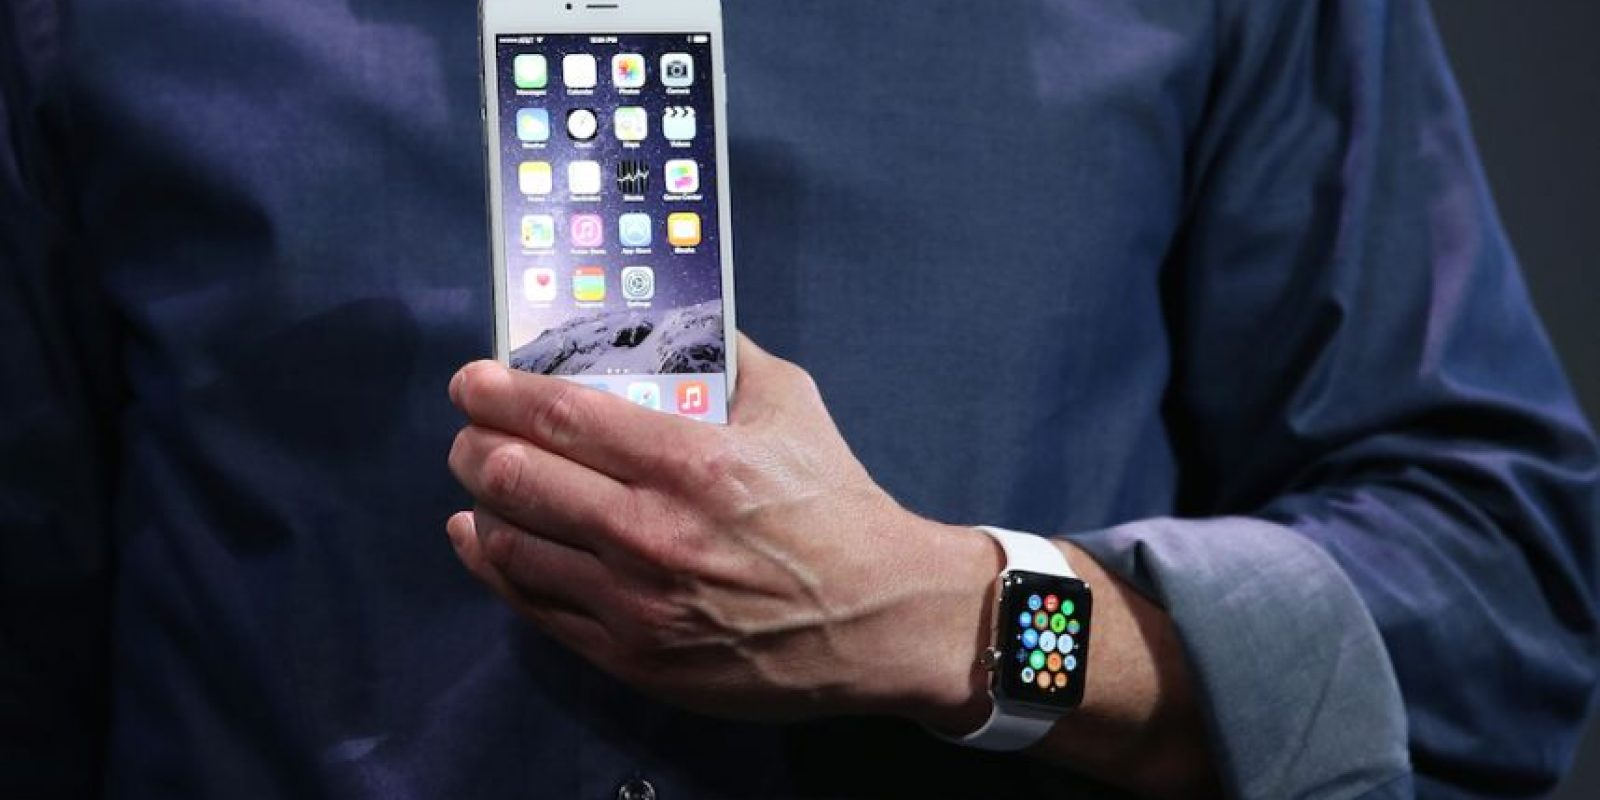 iPhone 6 Plus (2014) Foto: Getty Images